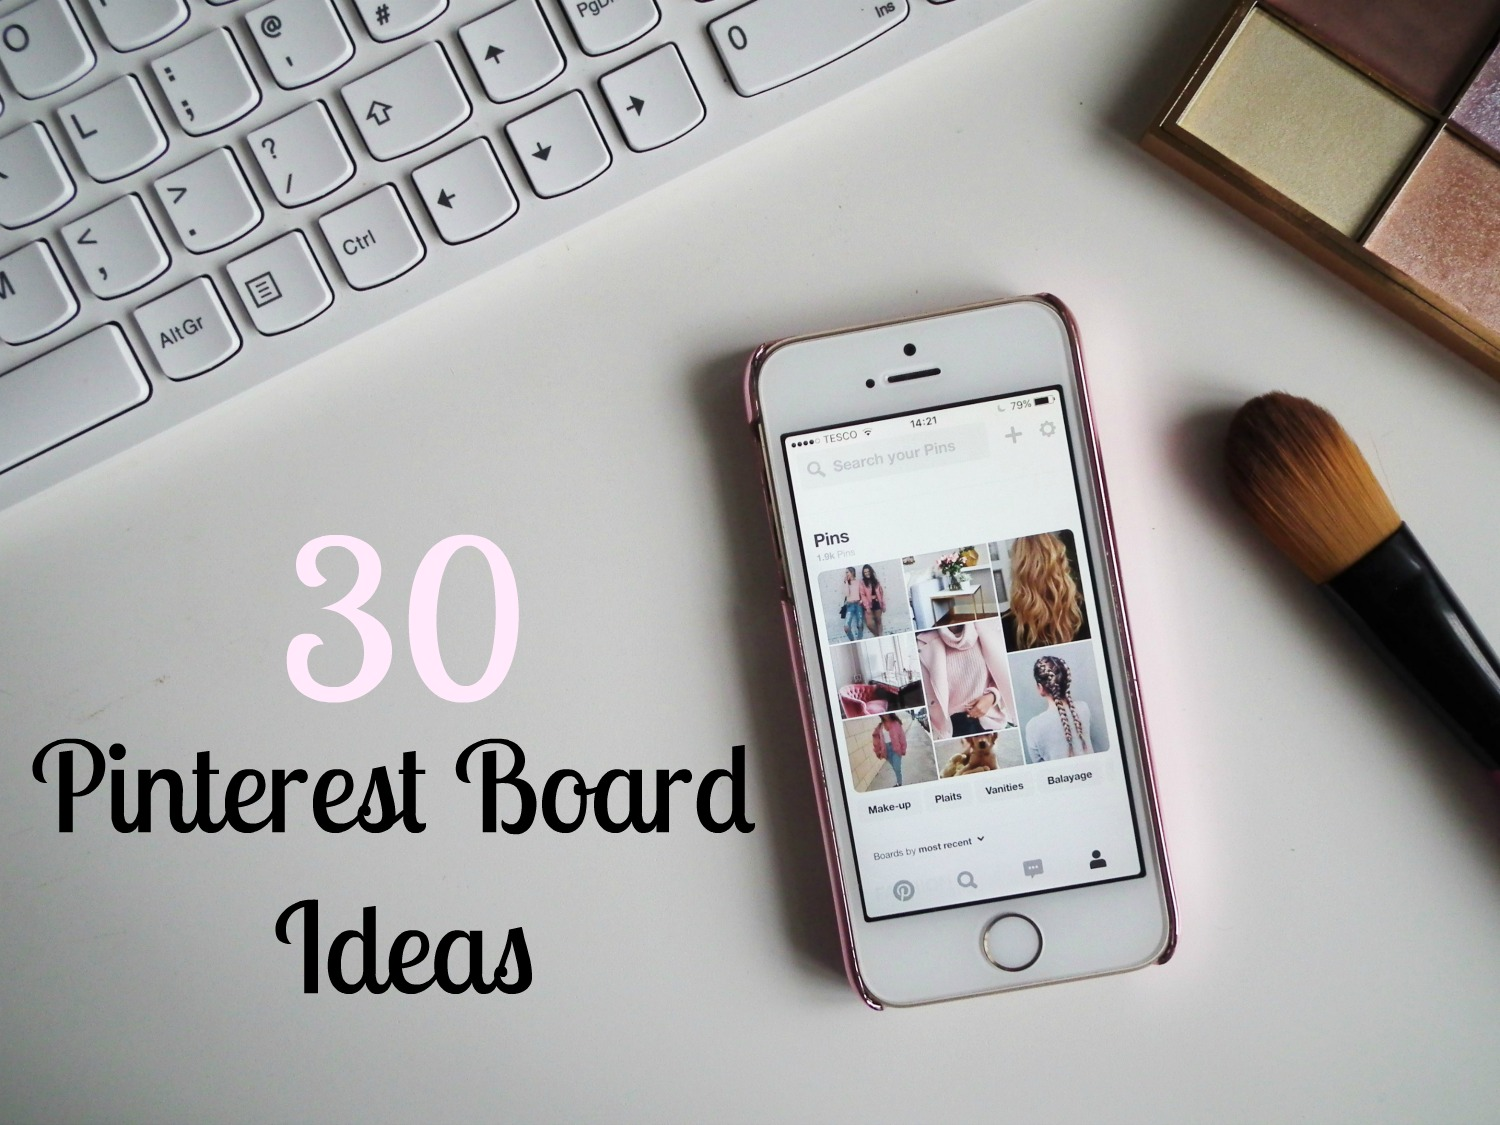 30 Pinterest Board Ideas